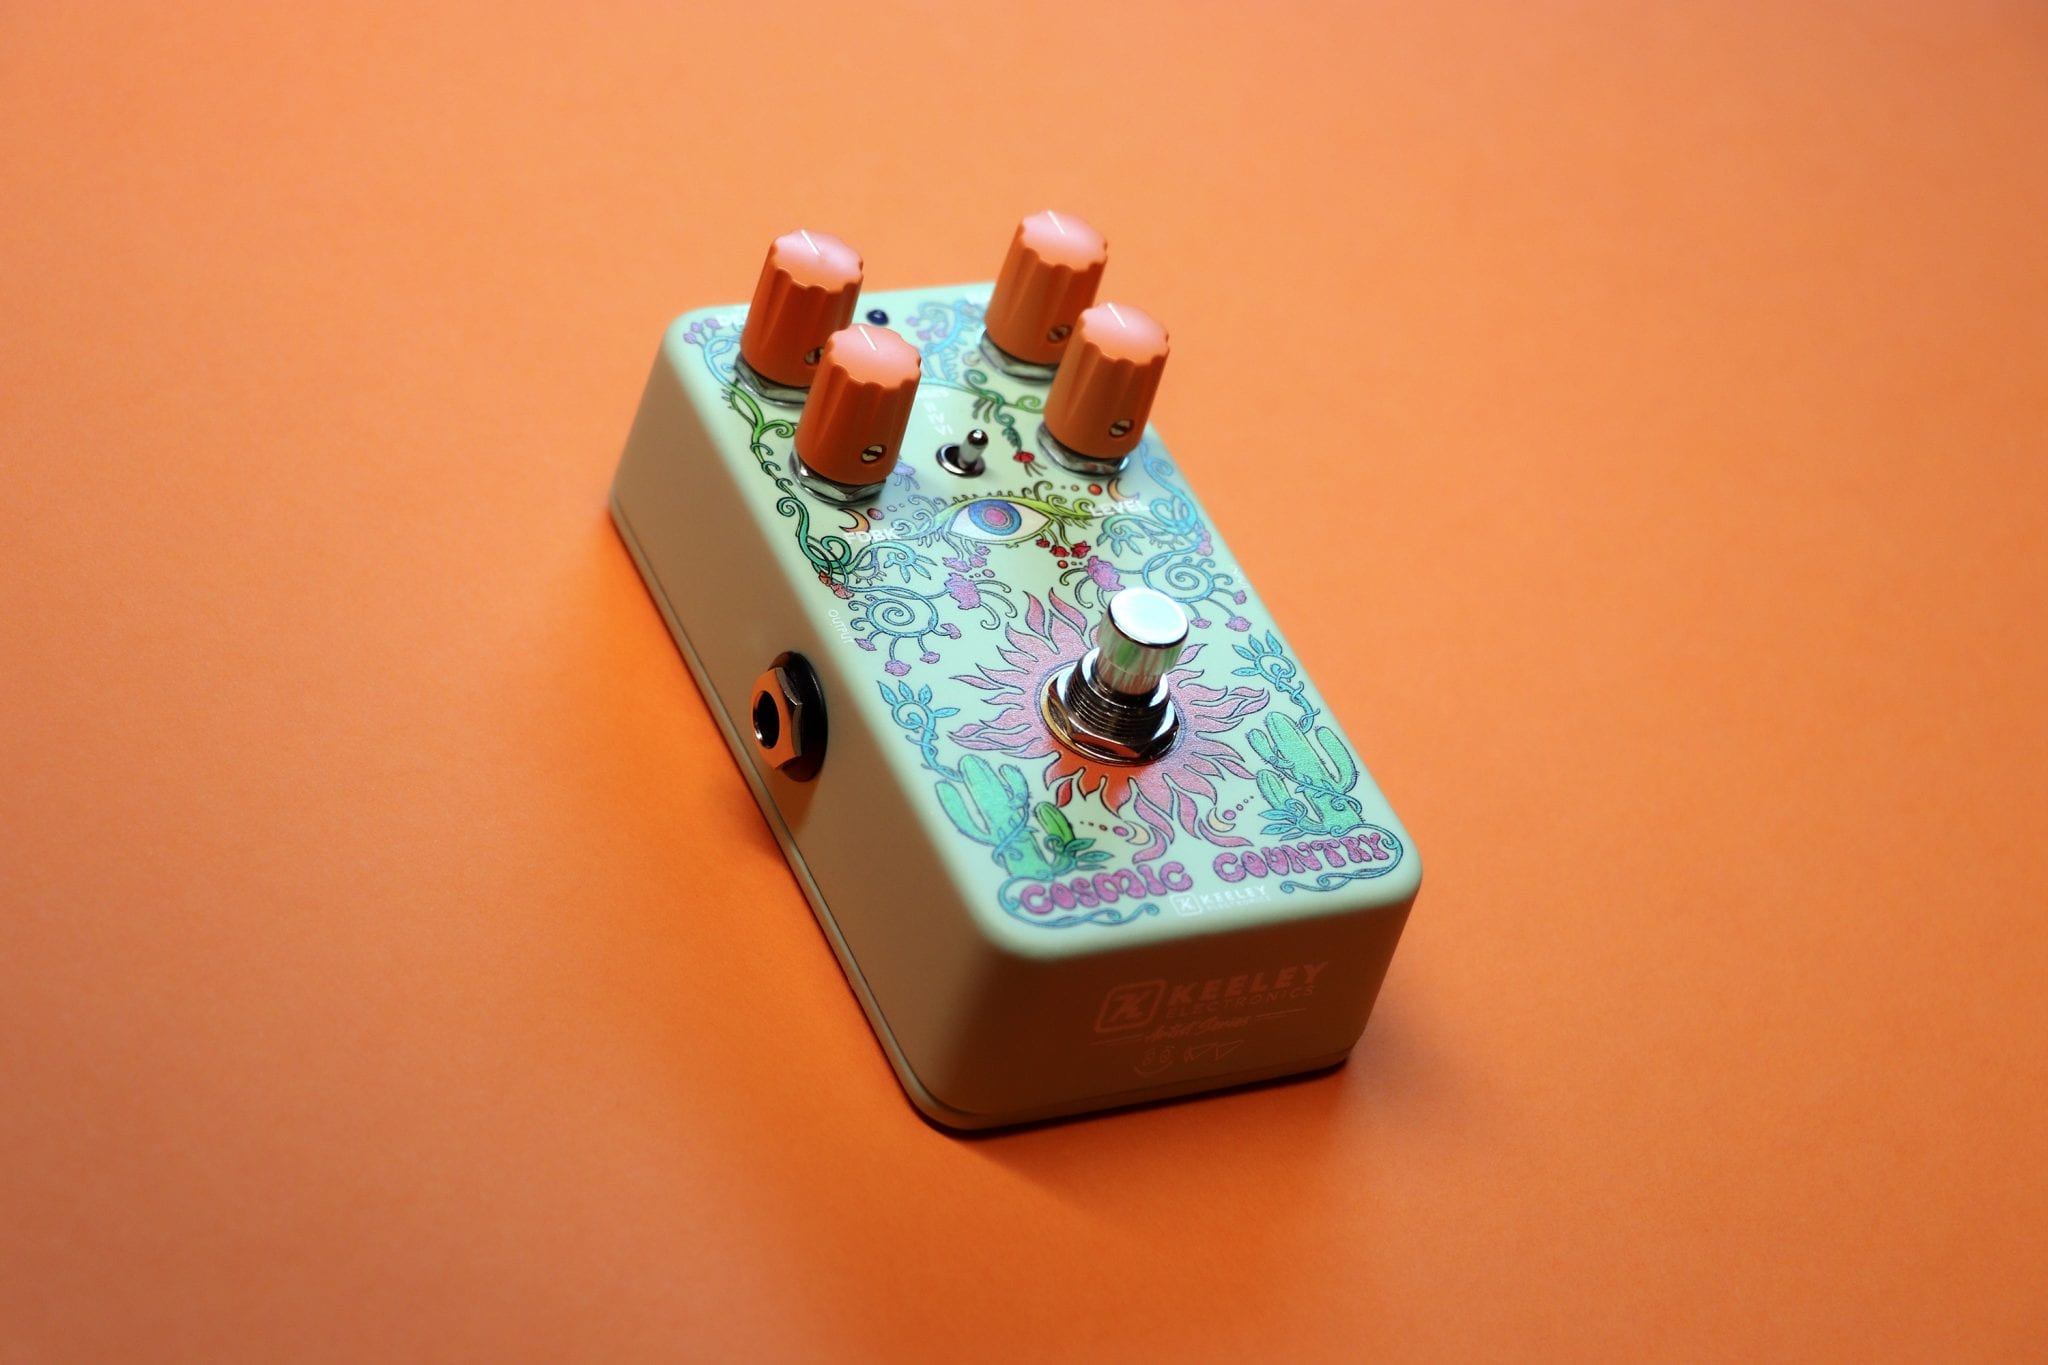 Keeley Artist Series Daniel Donato Cosmic Country Phaser